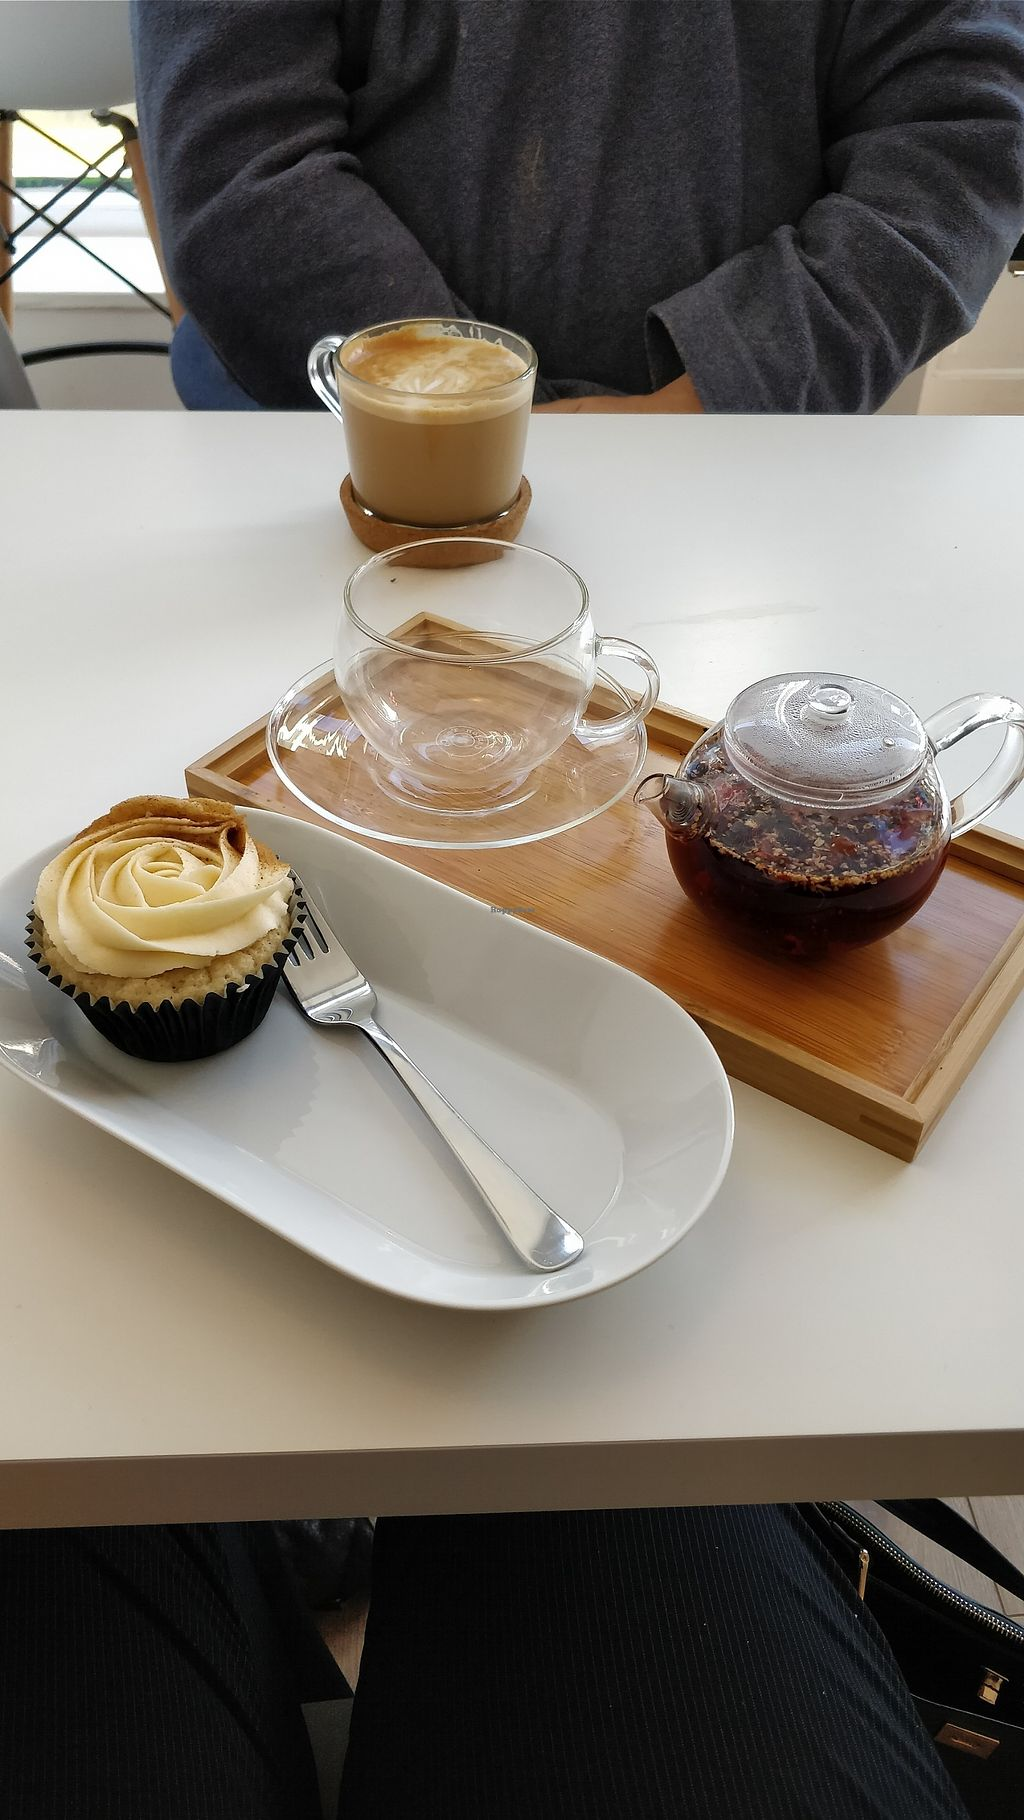 "Photo of Blanche Bakery  by <a href=""/members/profile/isabeloola"">isabeloola</a> <br/>Chai latte cupcakes and berry hibiscus tea <br/> January 5, 2018  - <a href='/contact/abuse/image/79393/343212'>Report</a>"